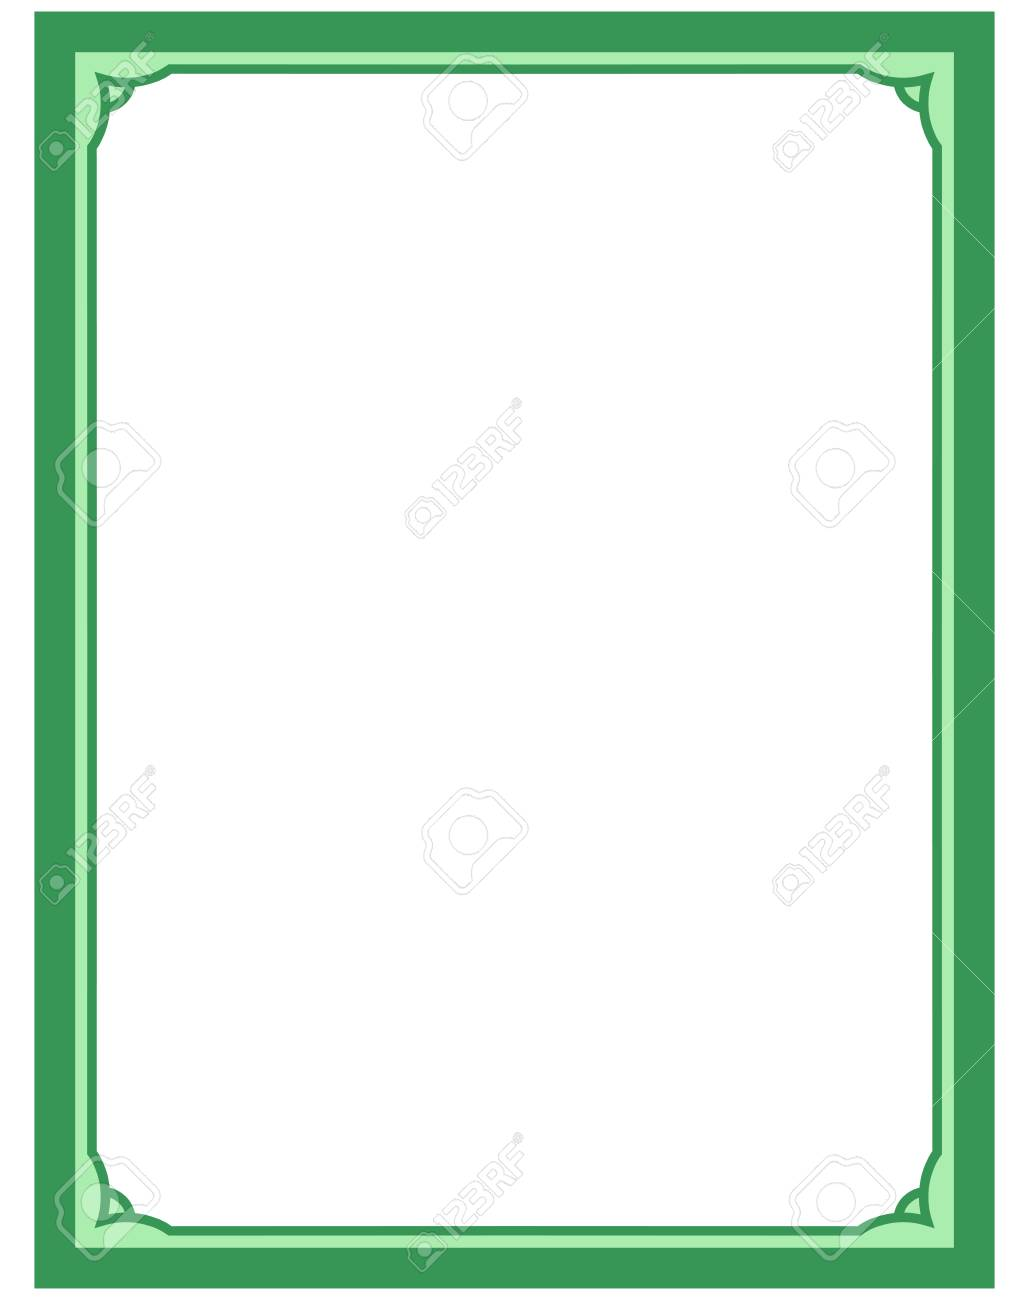 Green border frame deco vector art simple line corner.